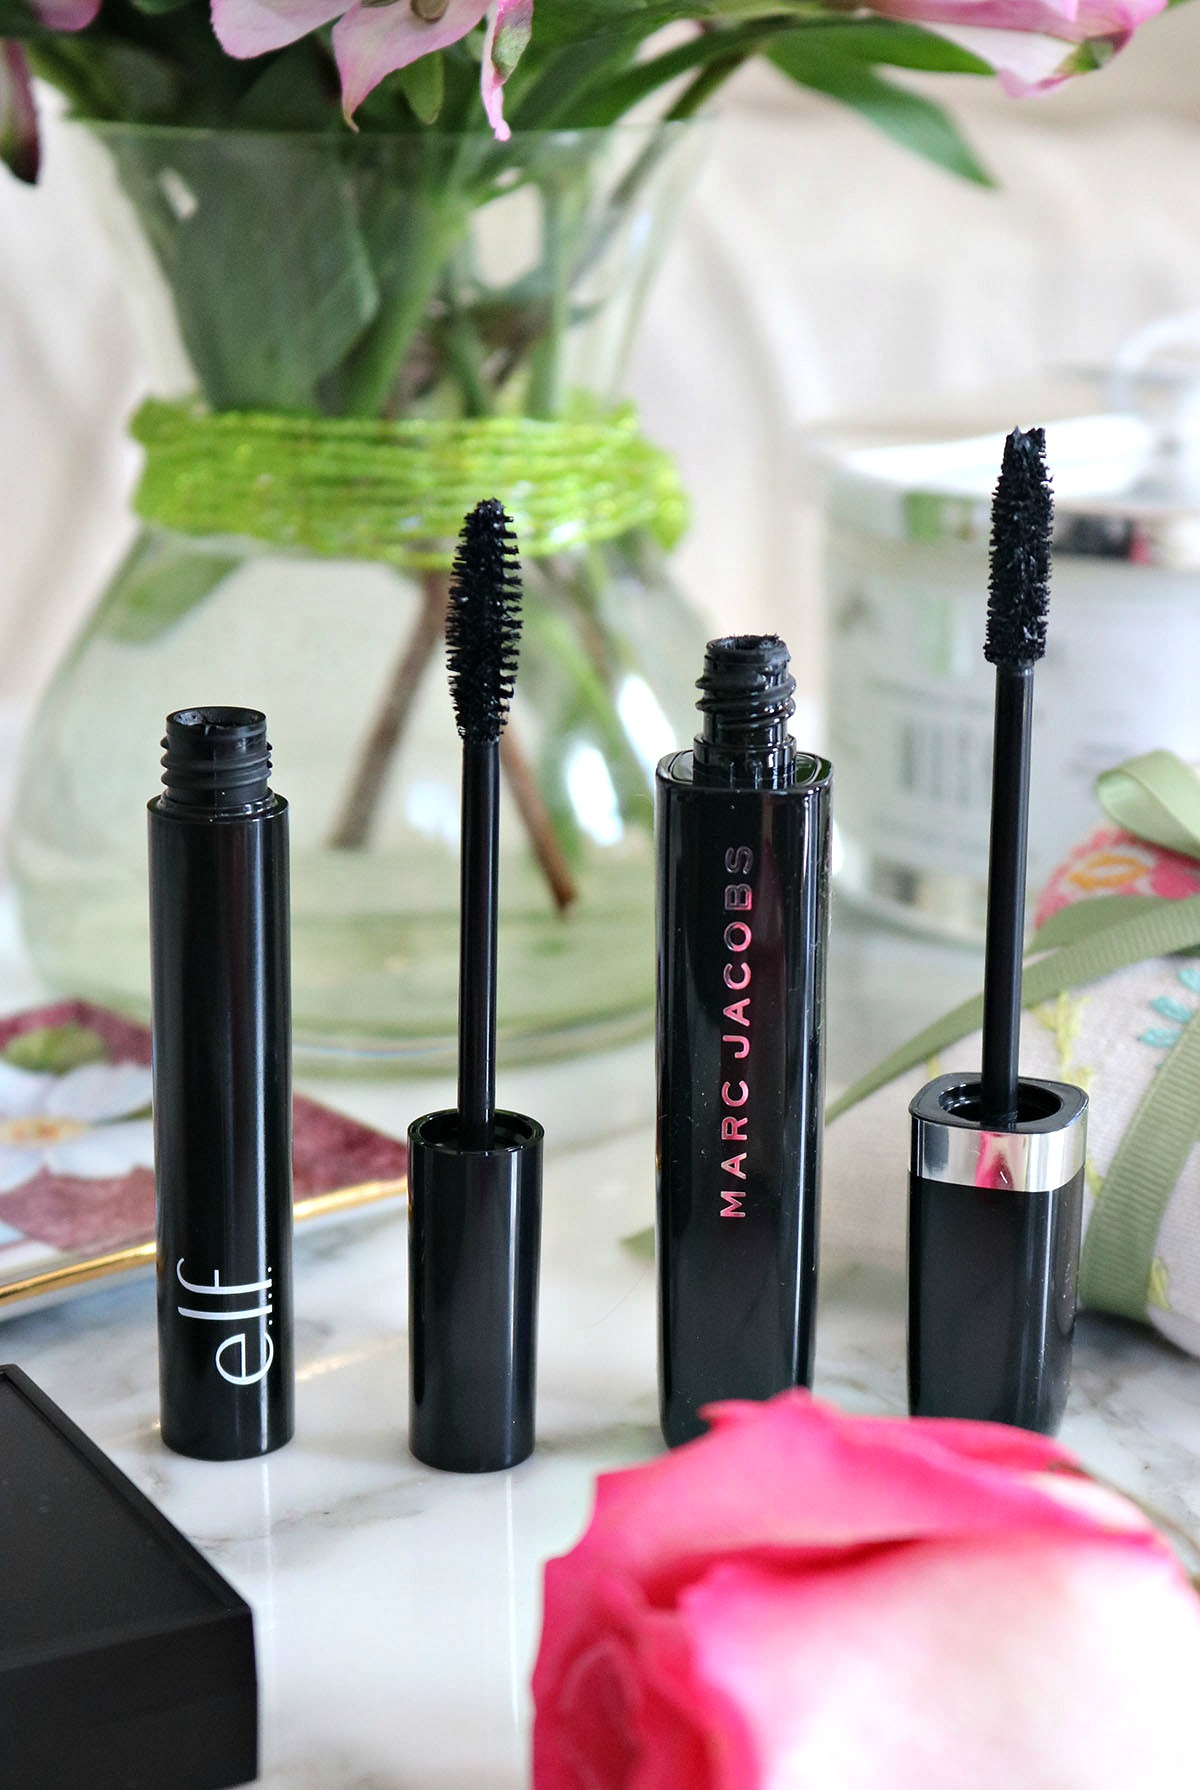 Mascara Showdown I Marc Jacobs Beauty Mega Lash v. Elf Cosmetics Mineral Infused Mascara #DrugstoreMakeup #CrueltyFreeBeauty #CrueltyFreeMakeup #Mascara